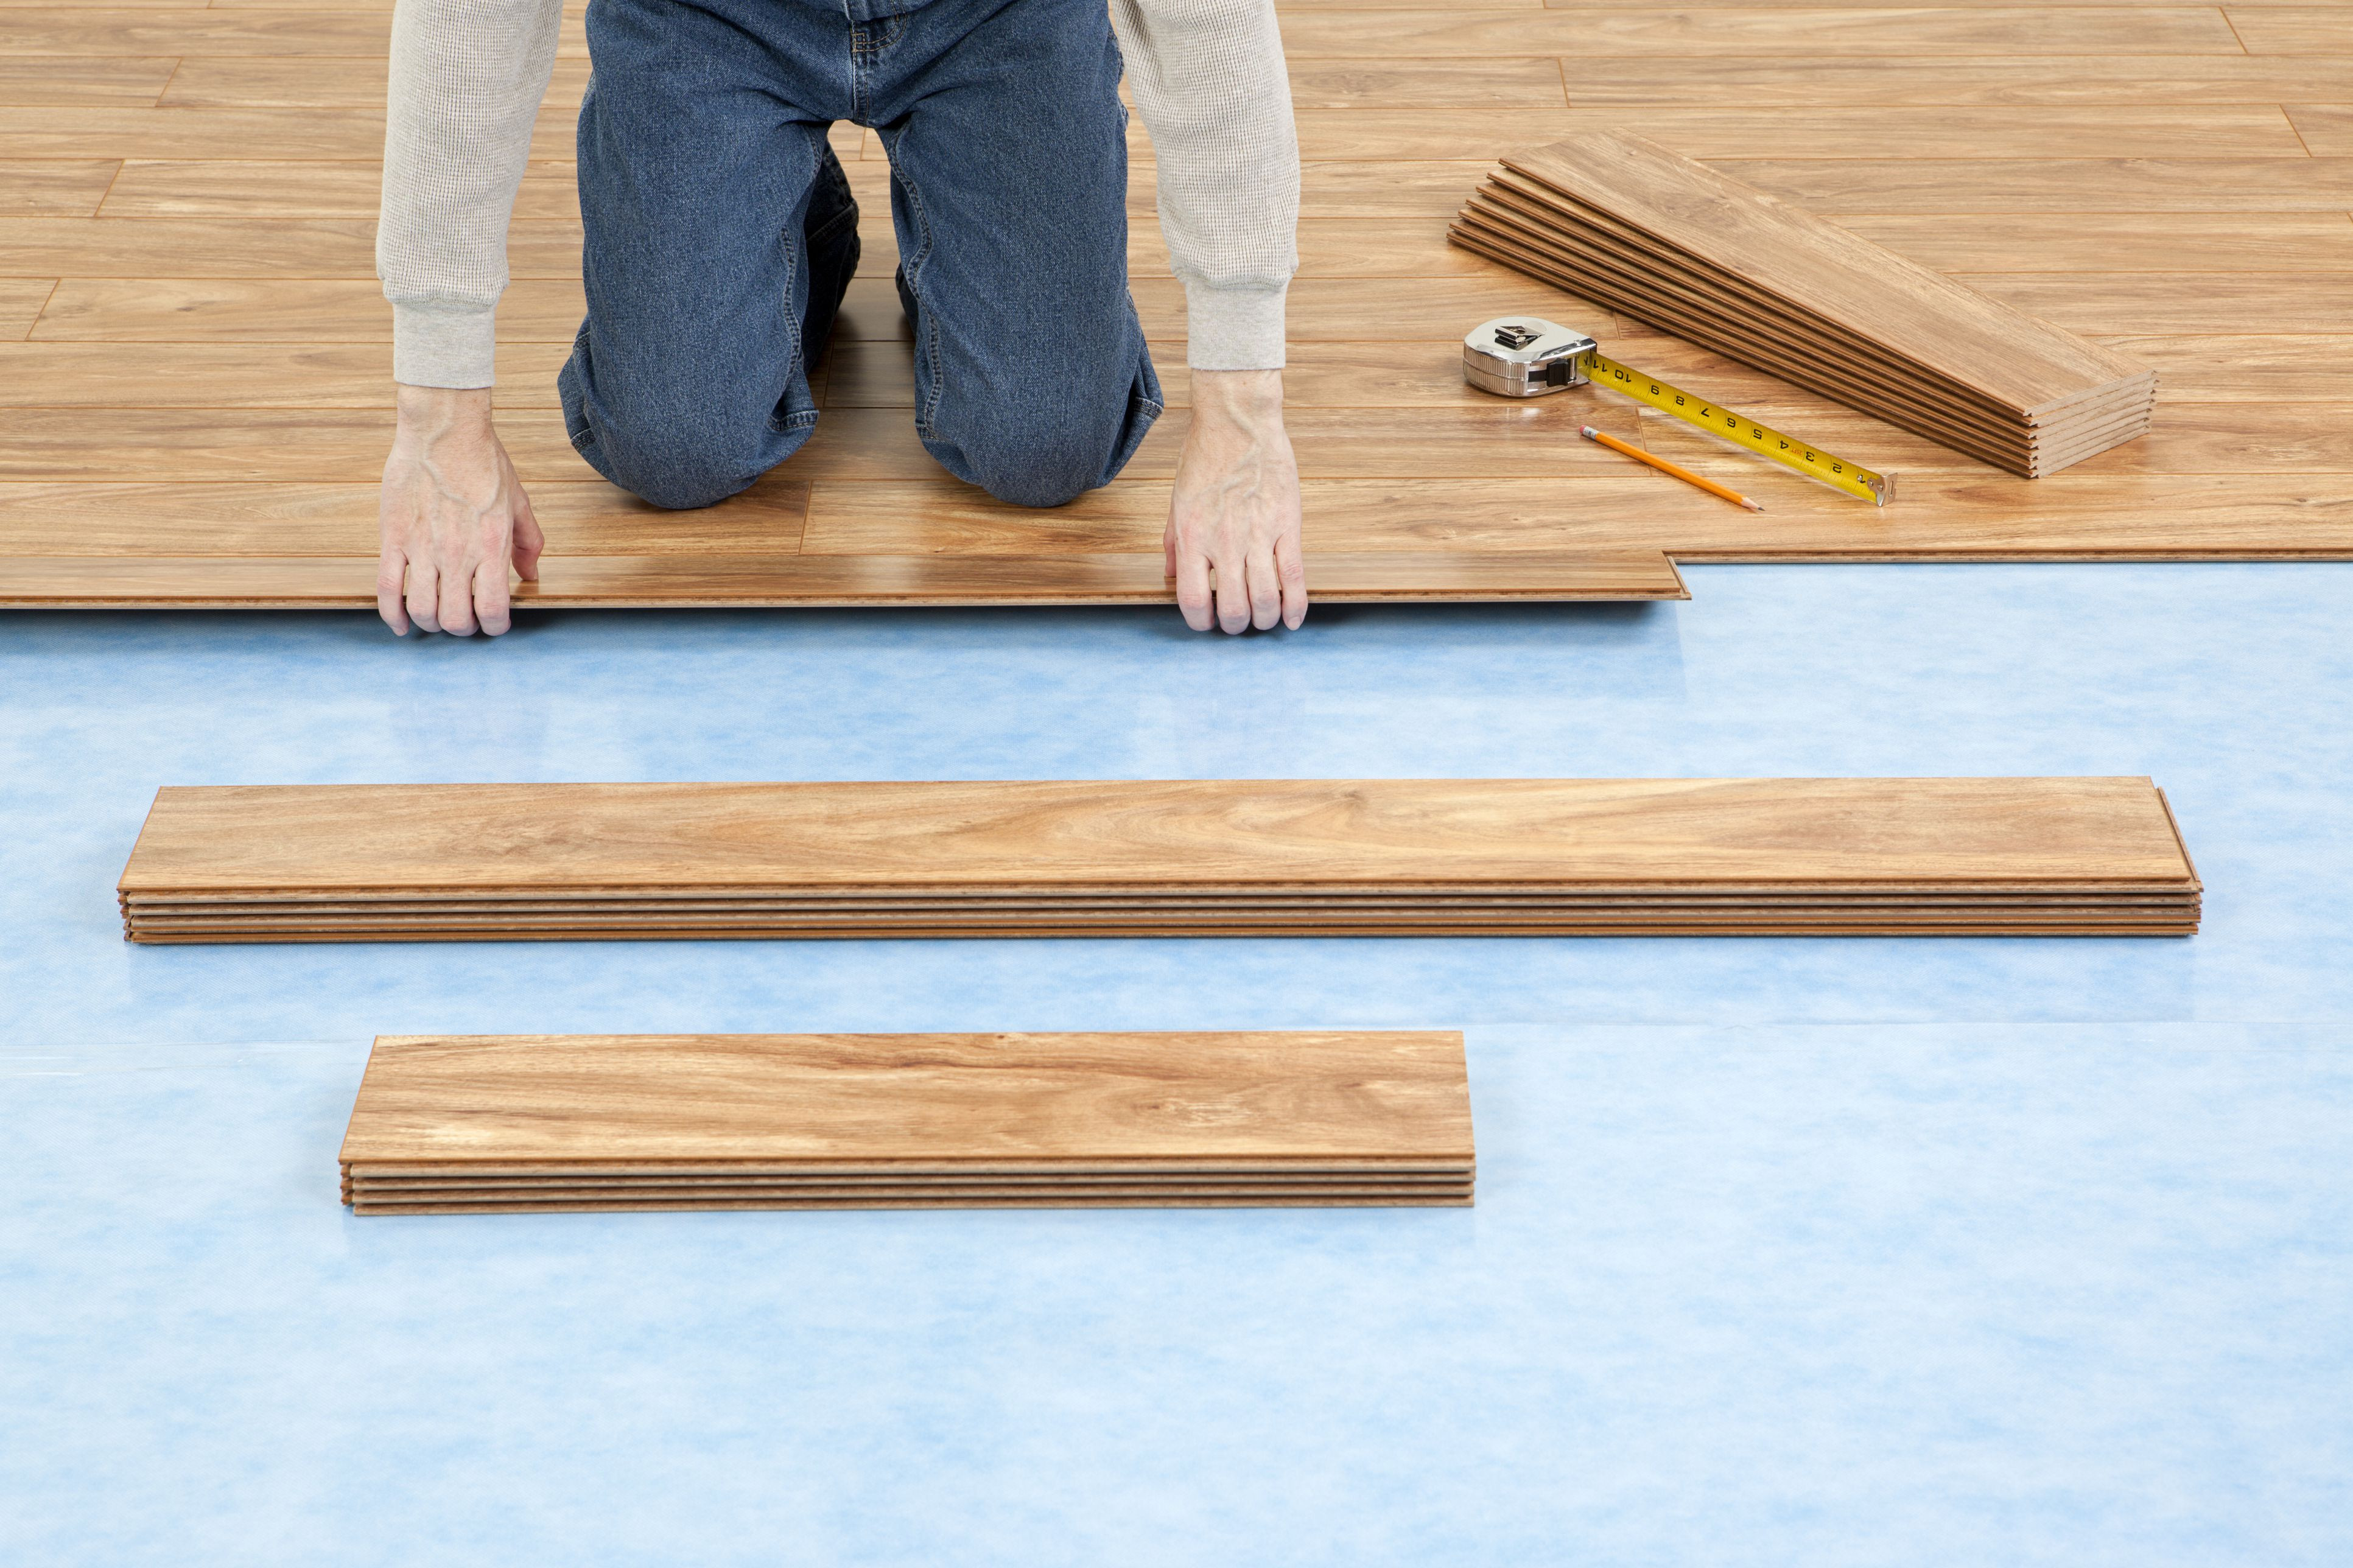 Vapor Barrier for Hardwood Floor Installation Of Installing Laminate Flooring with attached Underlayment for New Floor Installation 155283725 582735c03df78c6f6af8ac80